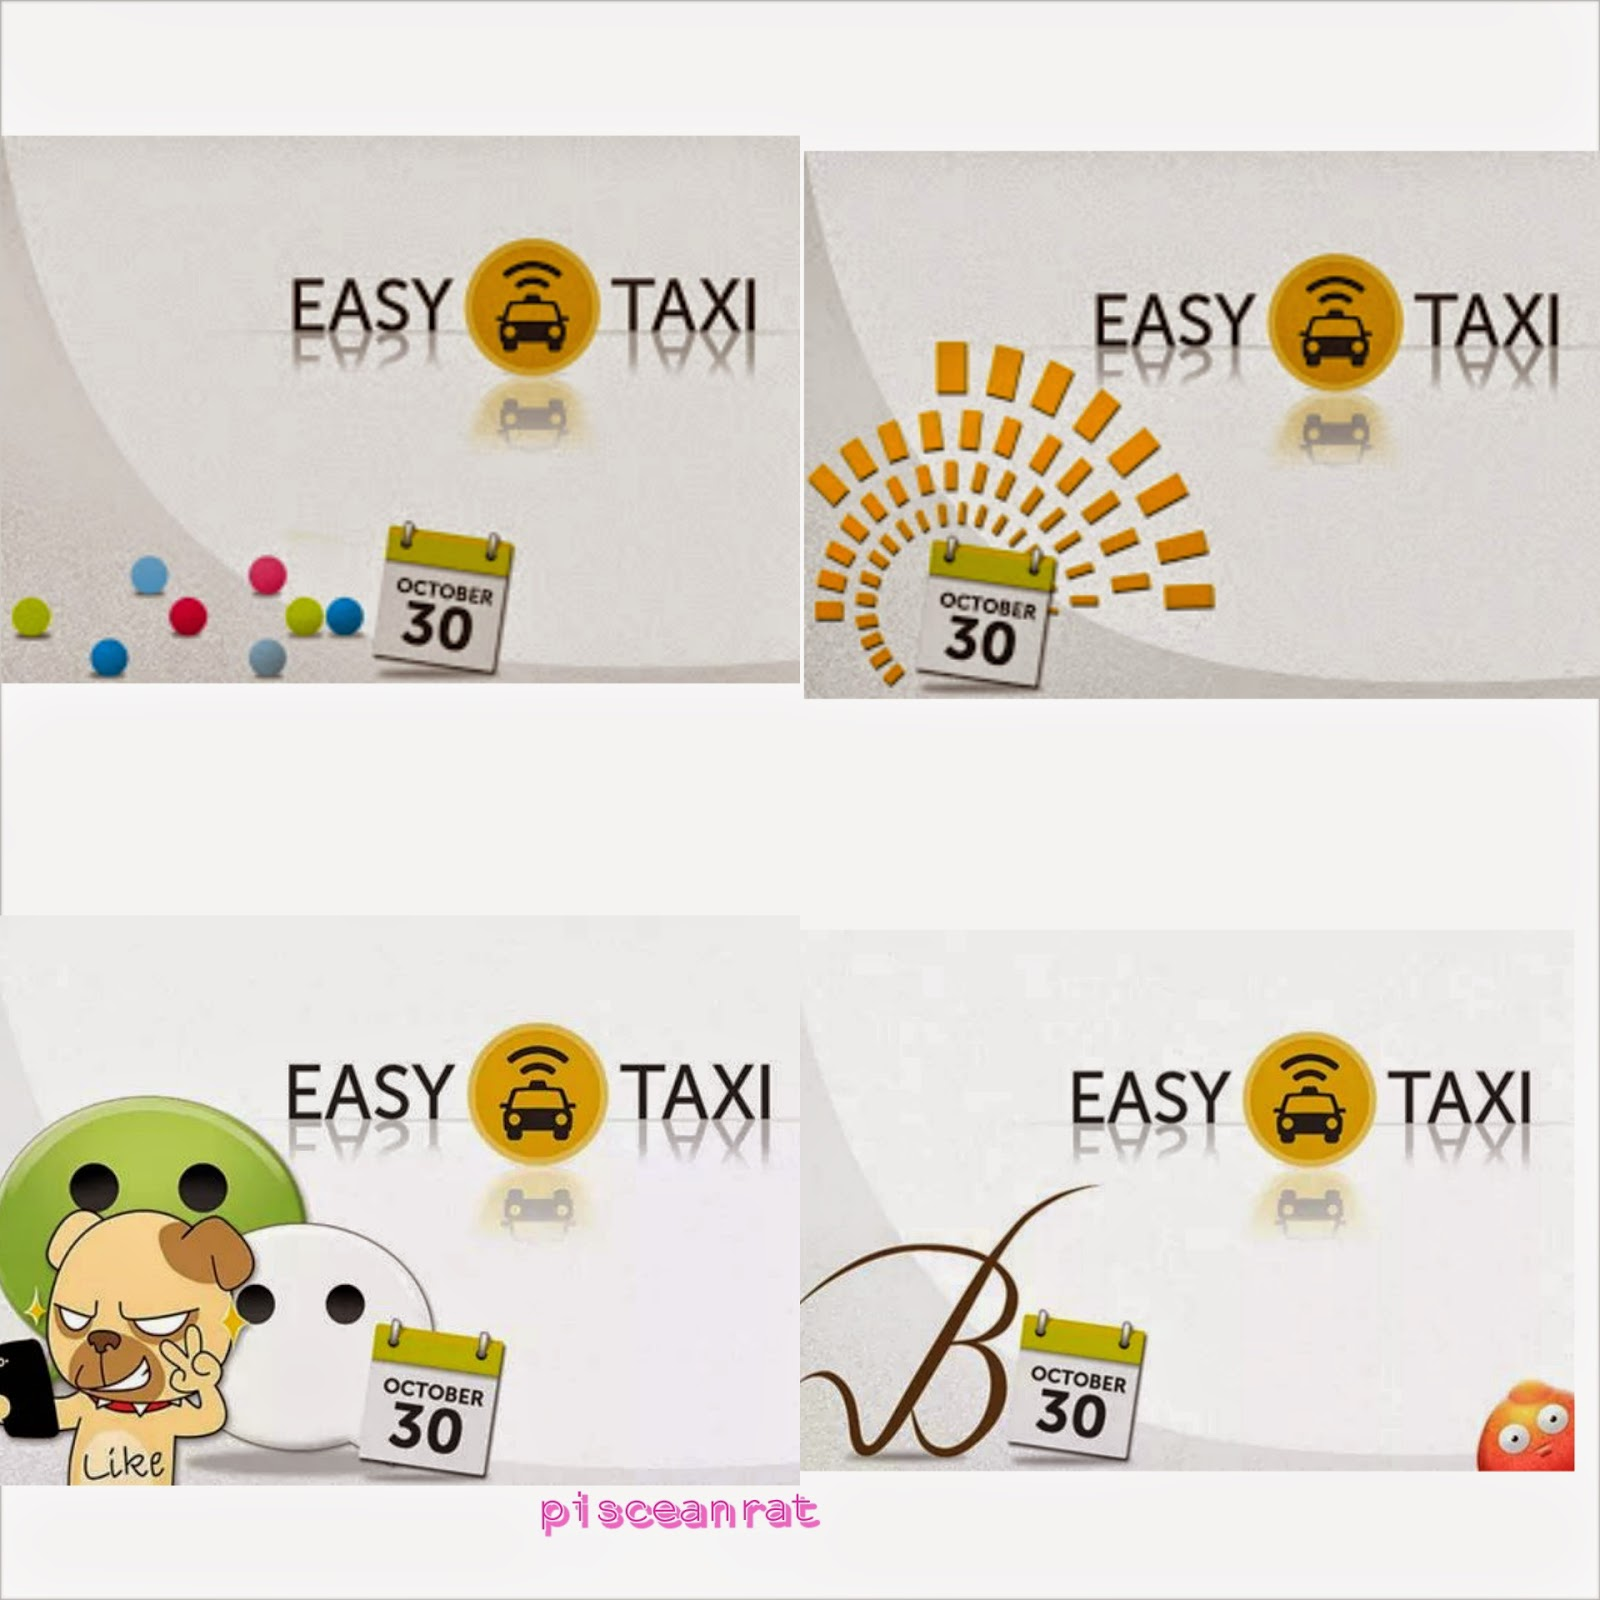 easy taxi smart sun belo we chat